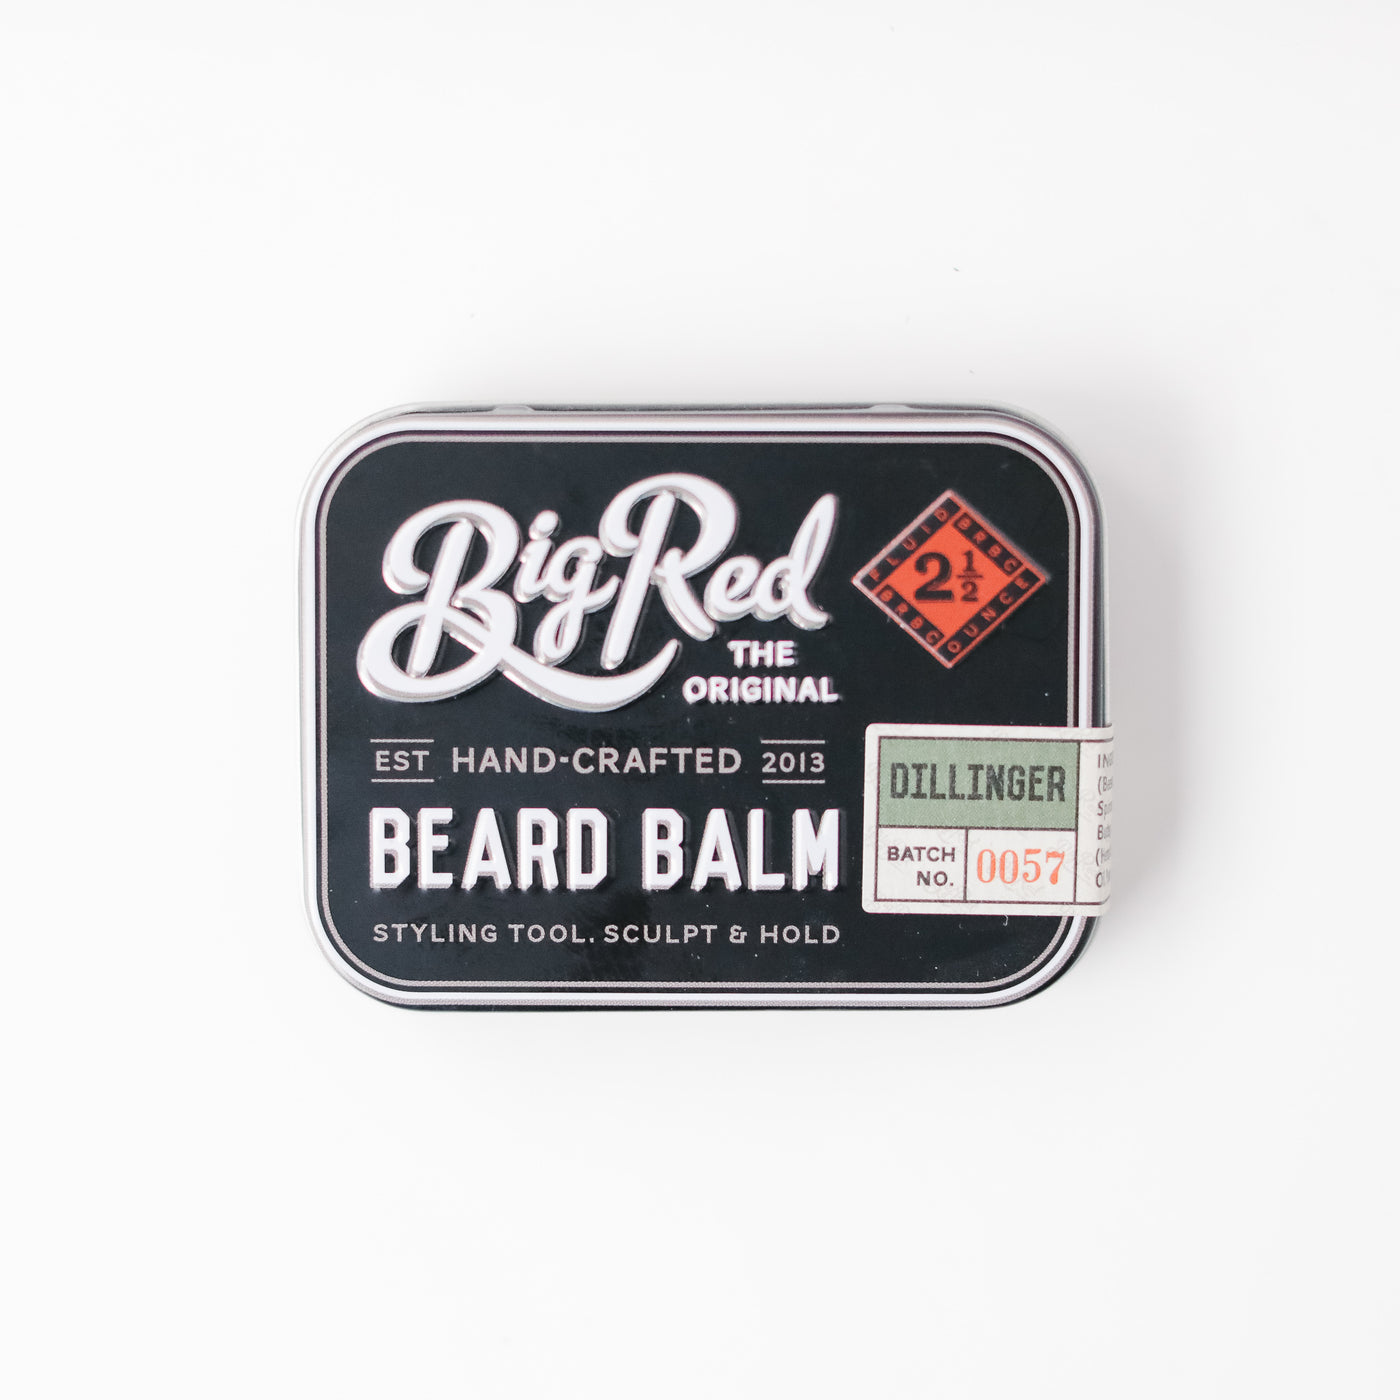 Big Red Beard Balm